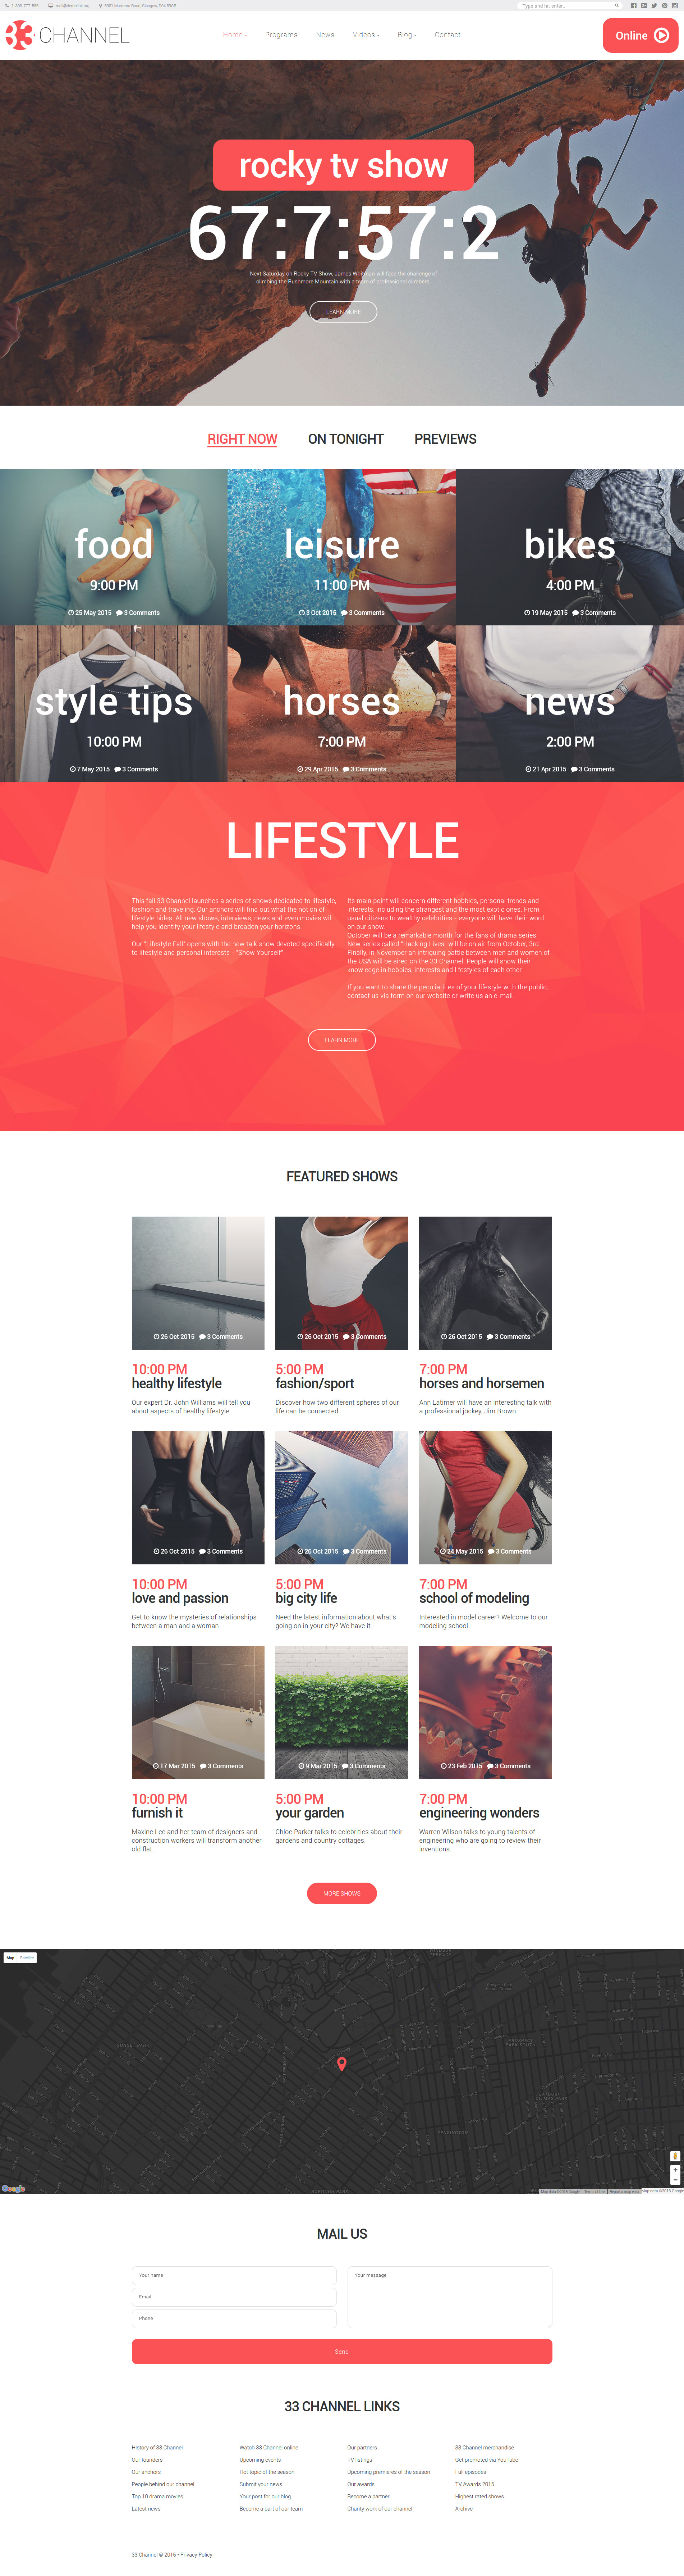 Channel Website Template